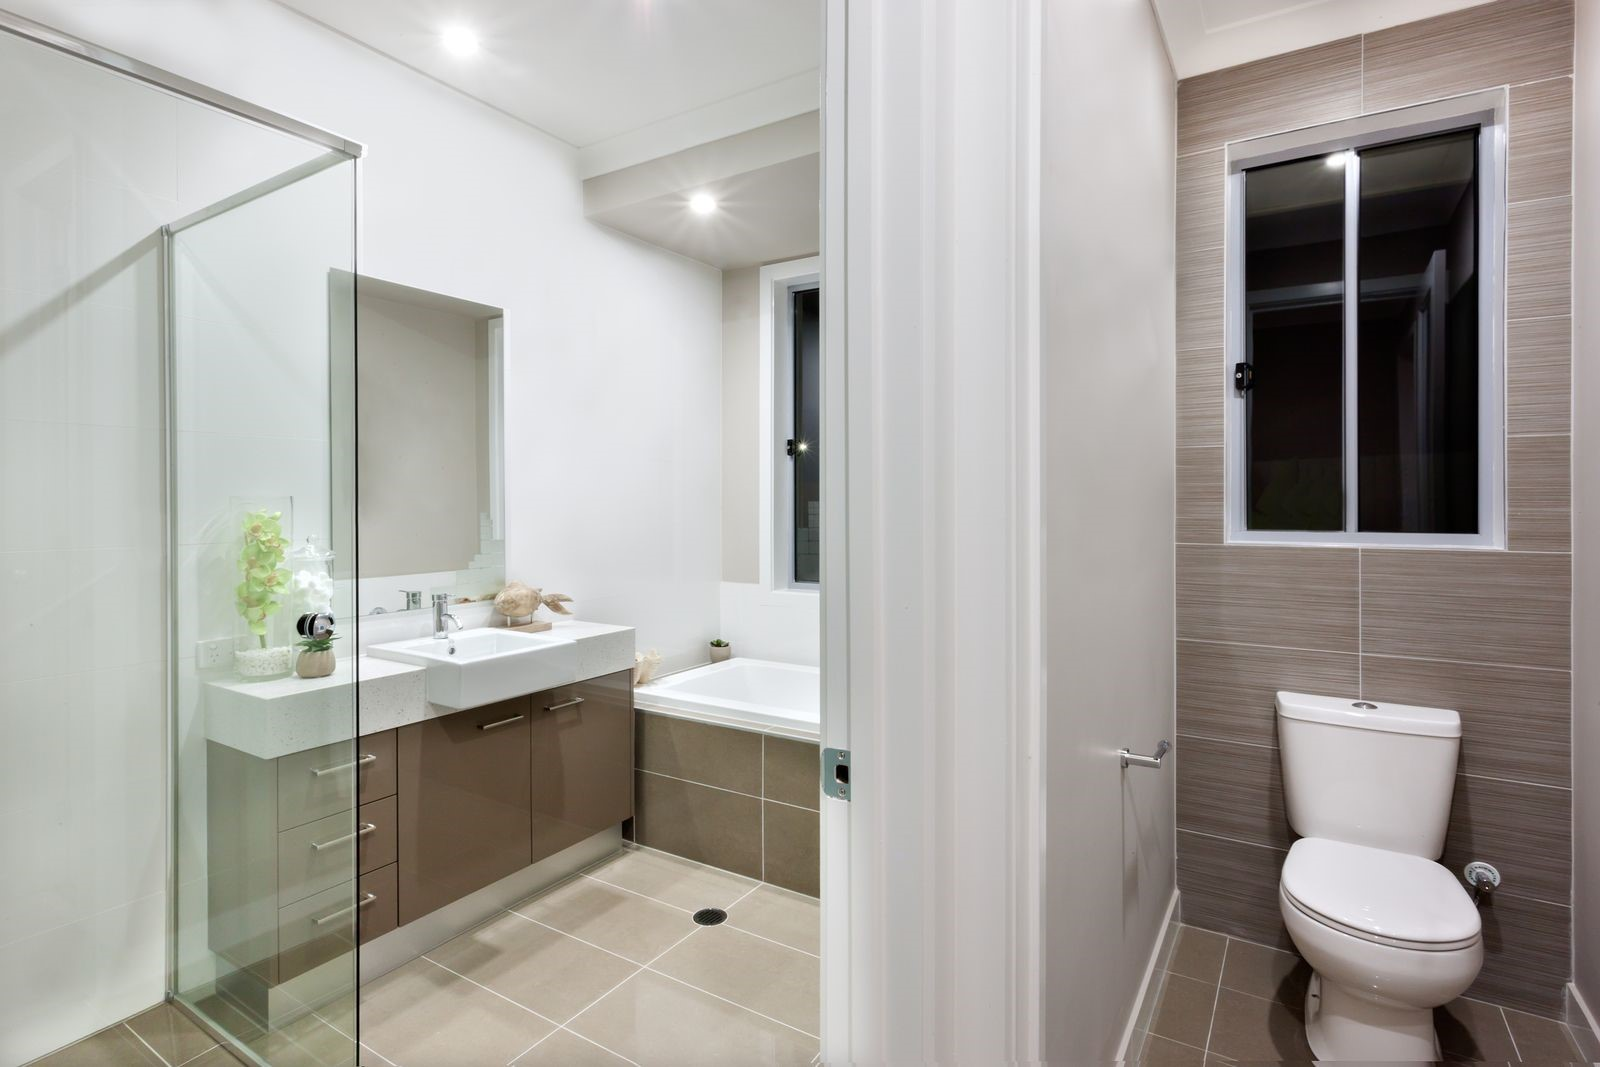 Bathroom Remodeling on a Budget: How to Create an Illusion of Space